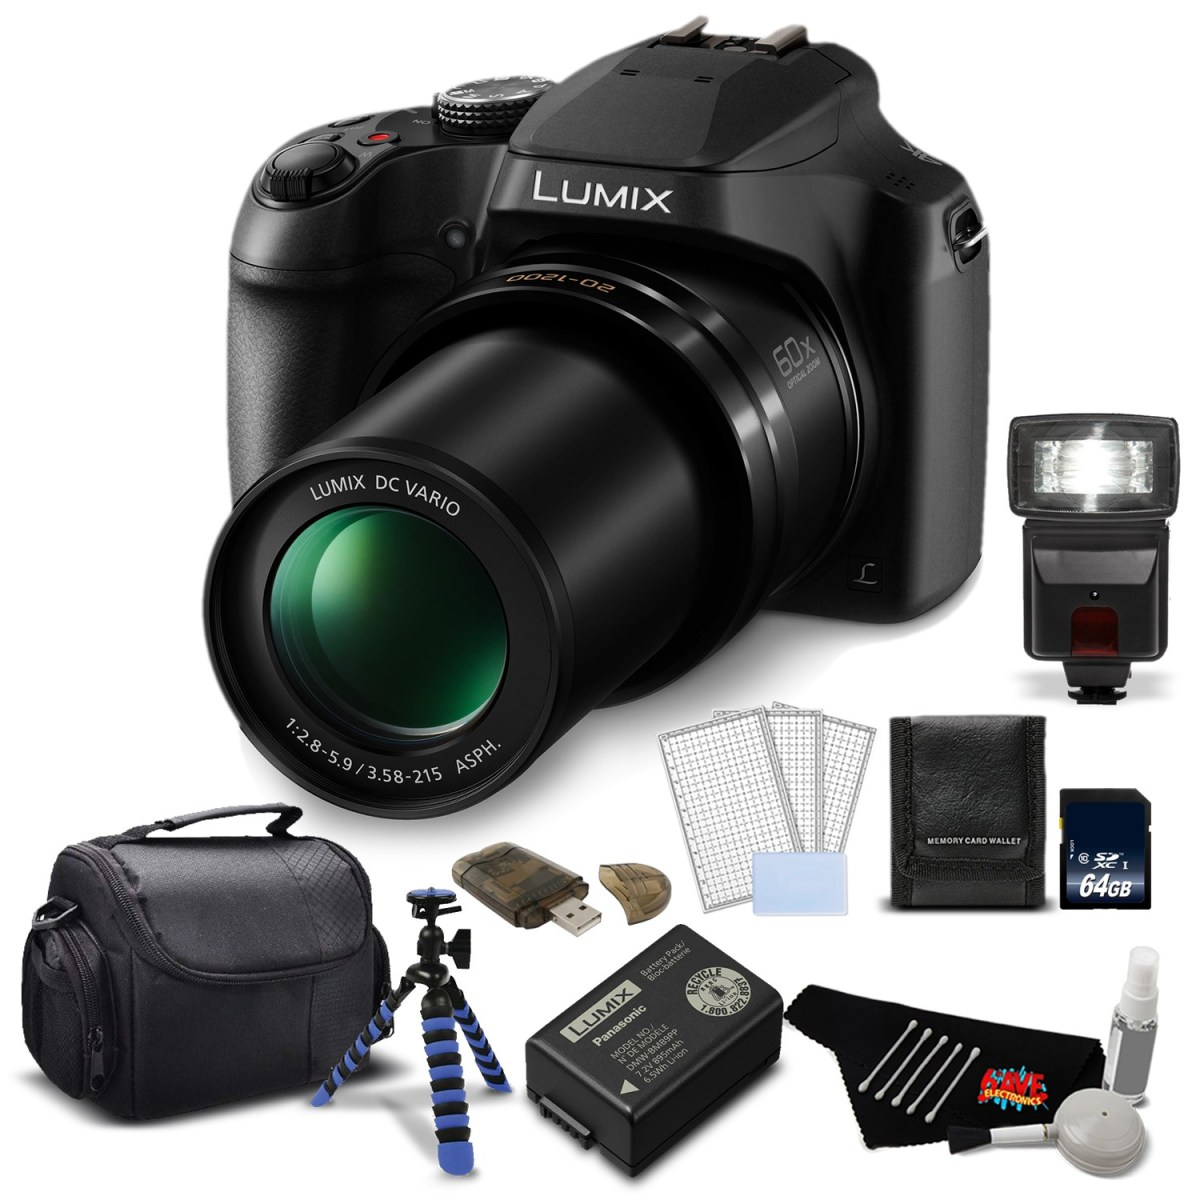 Panasonic Lumix DC-FZ80 60X Zoom Camera Bundle with 64GB Memory Card